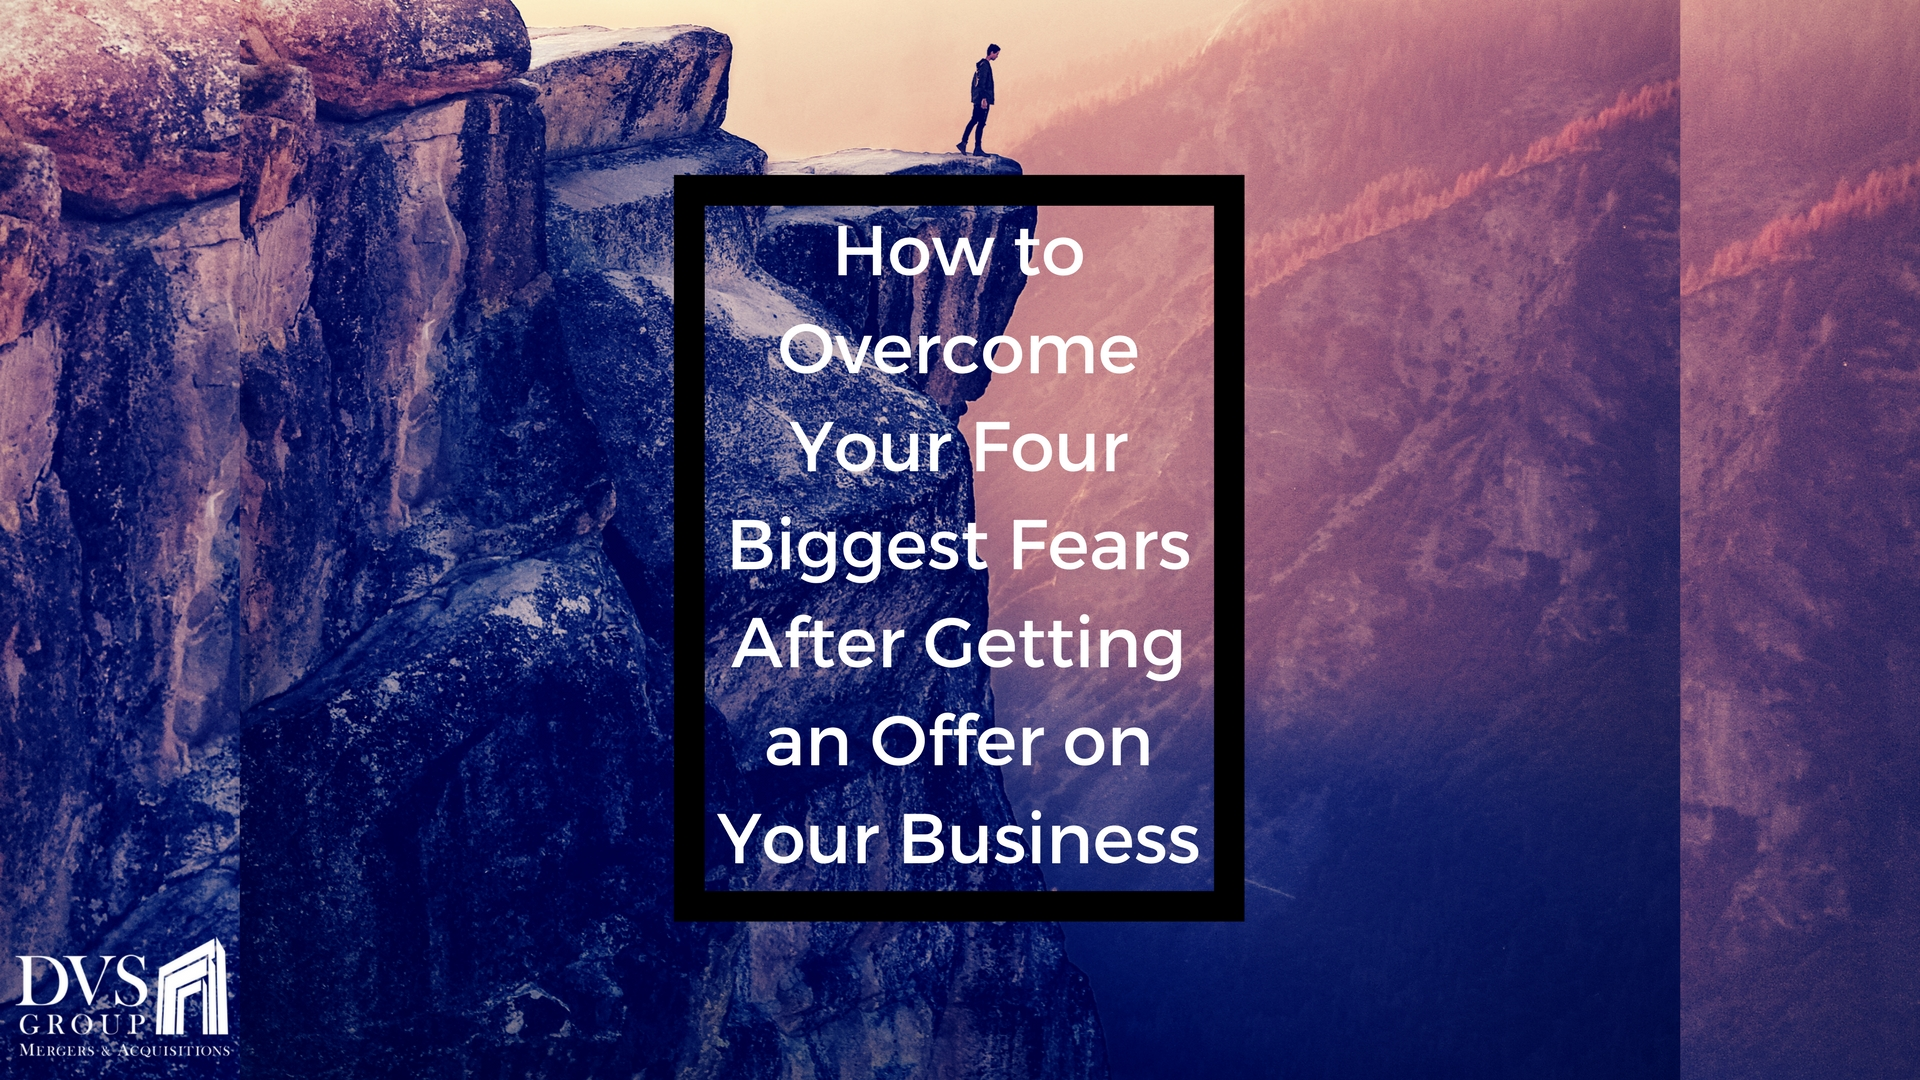 The Four Biggest Fears Business Owners Face After An Offer